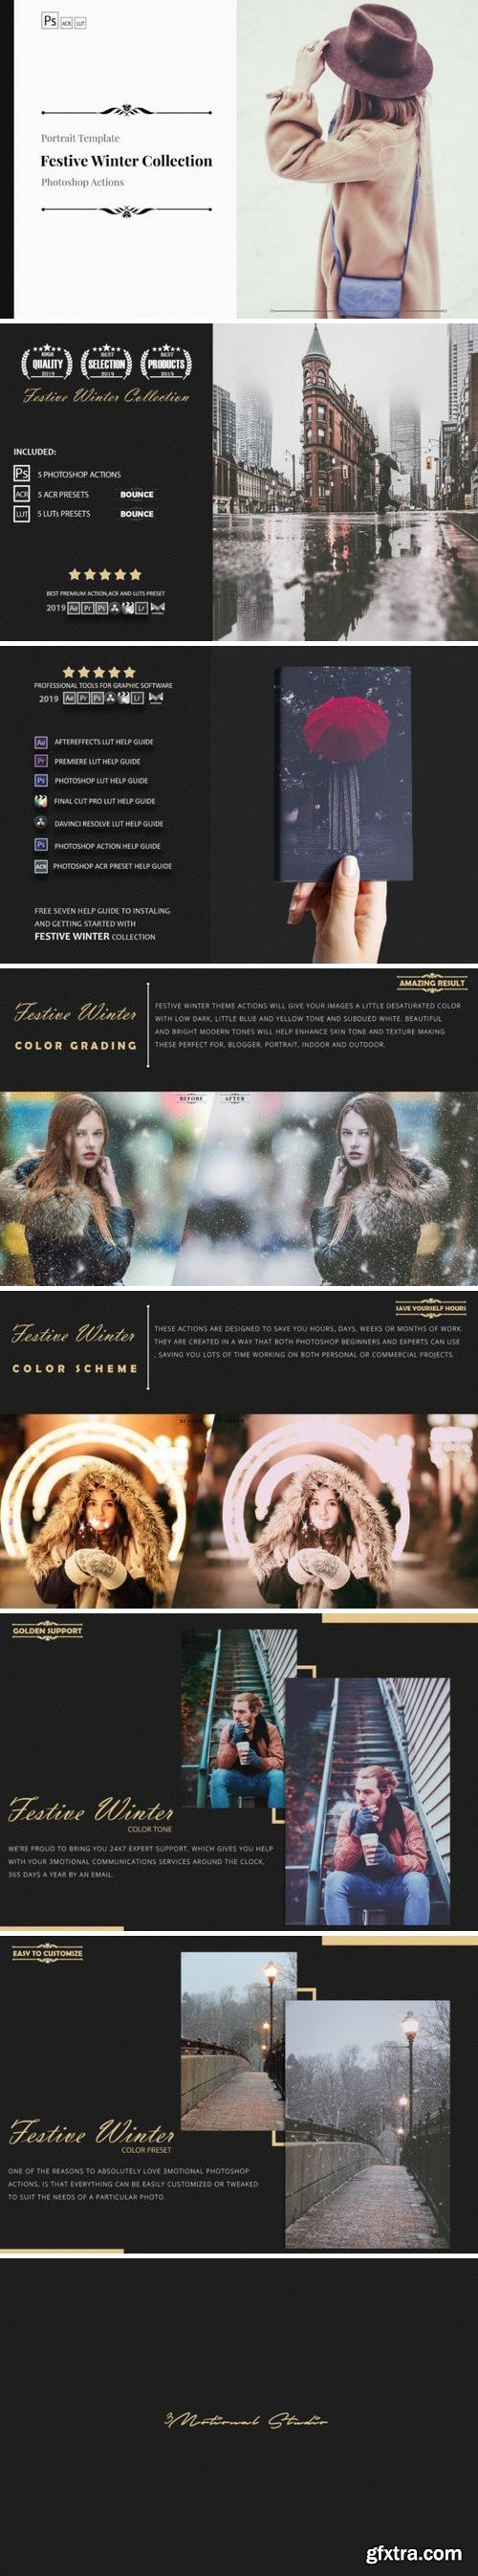 Thehungryjpeg - Neo Festive Winter Story Color Grading photoshop actions 3524674